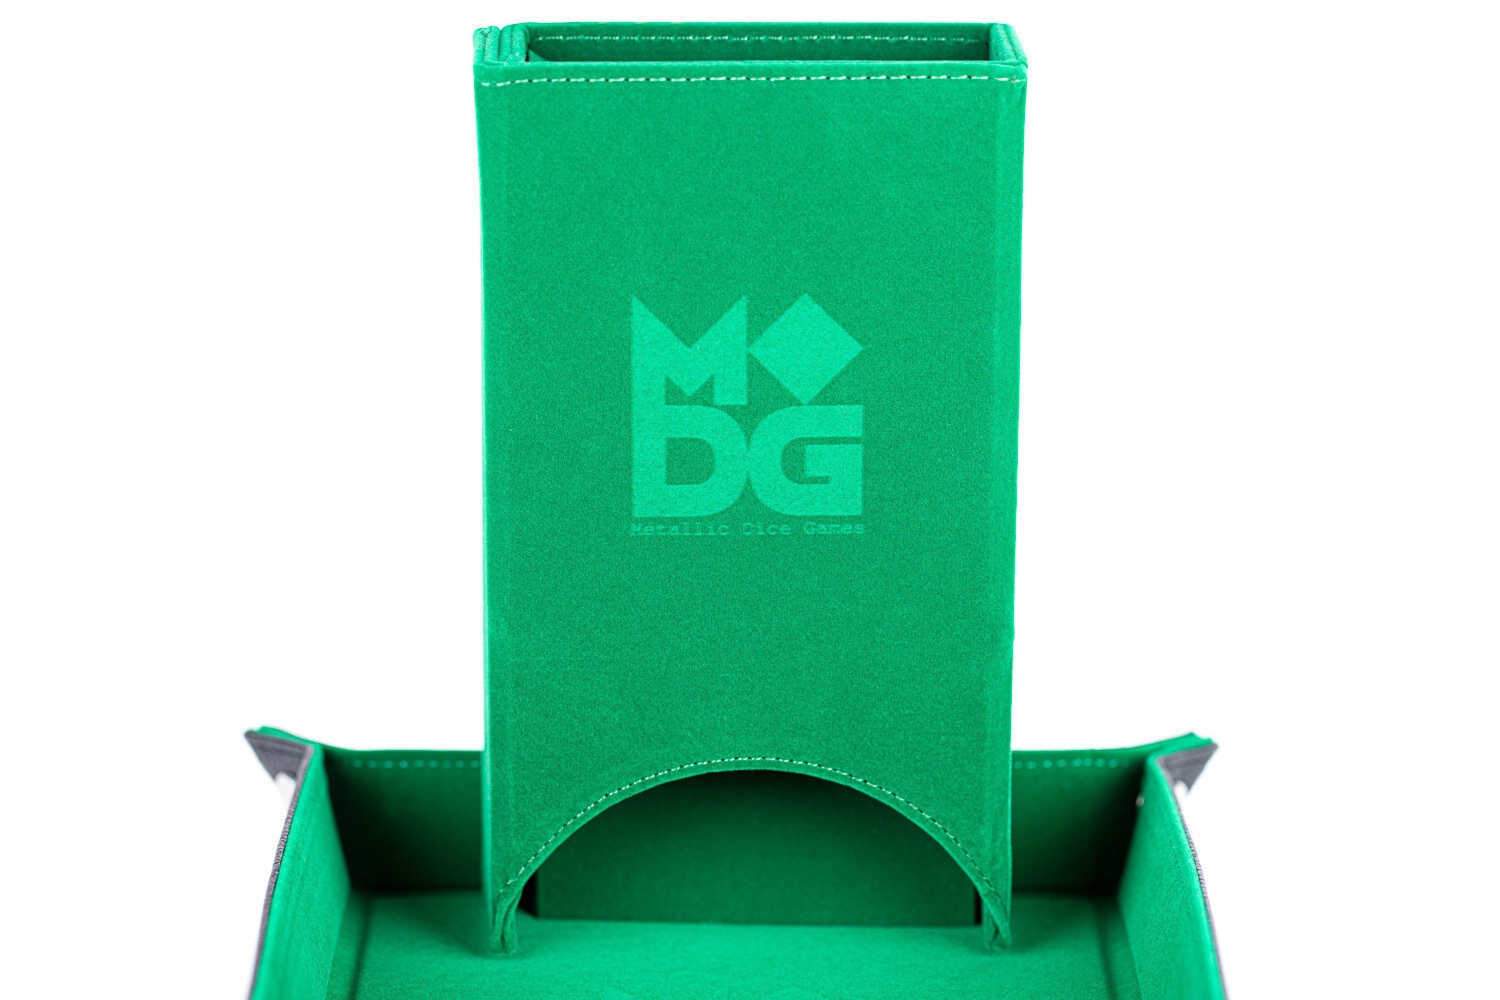 Fold Up Dice Tower For Polyhedral Gaming Dice RPG Role Play Green Velvet